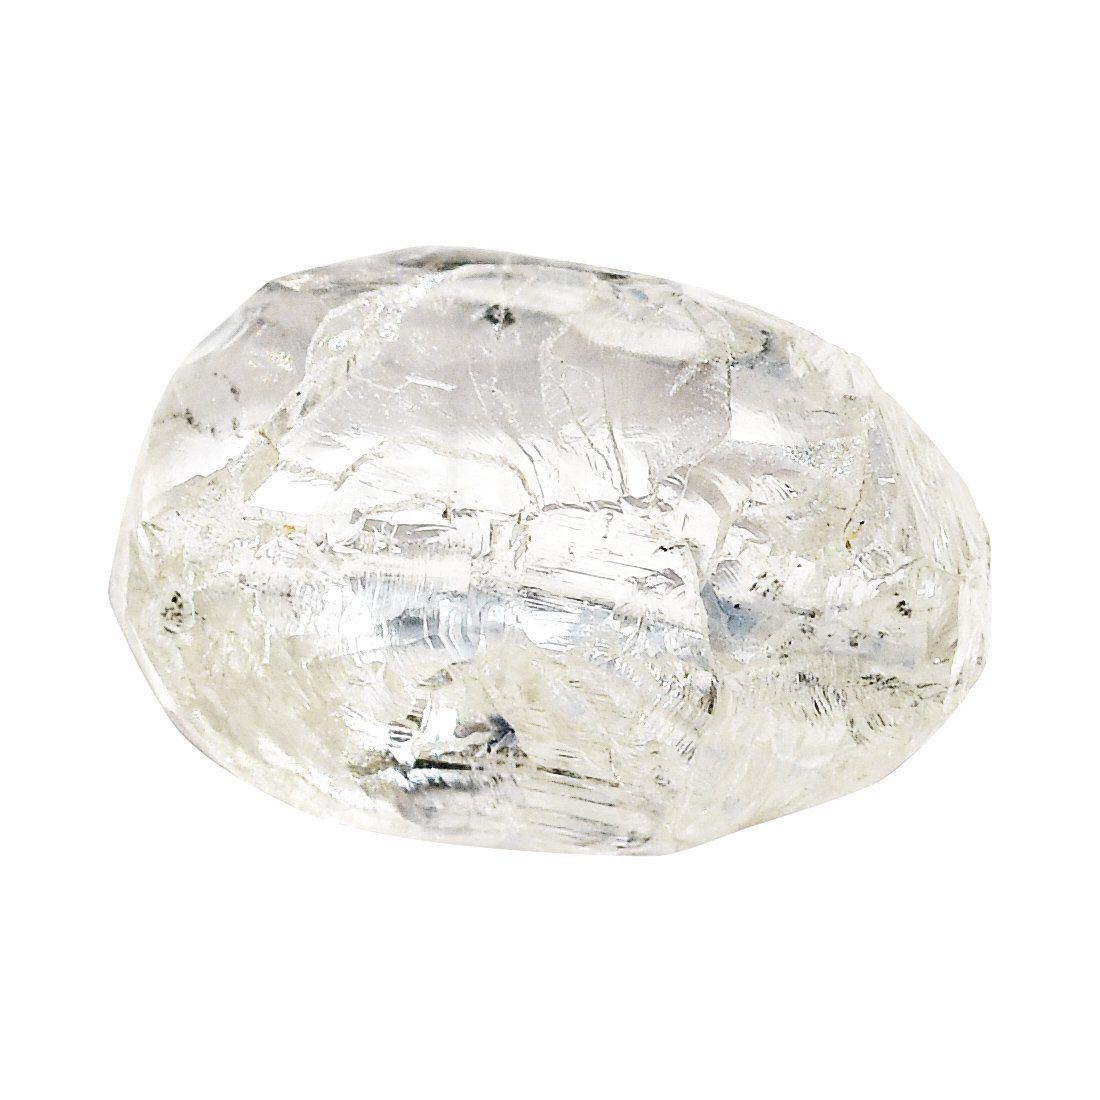 1.34 carat oblong and structured free-form rough diamond crystal Raw Diamond South Africa